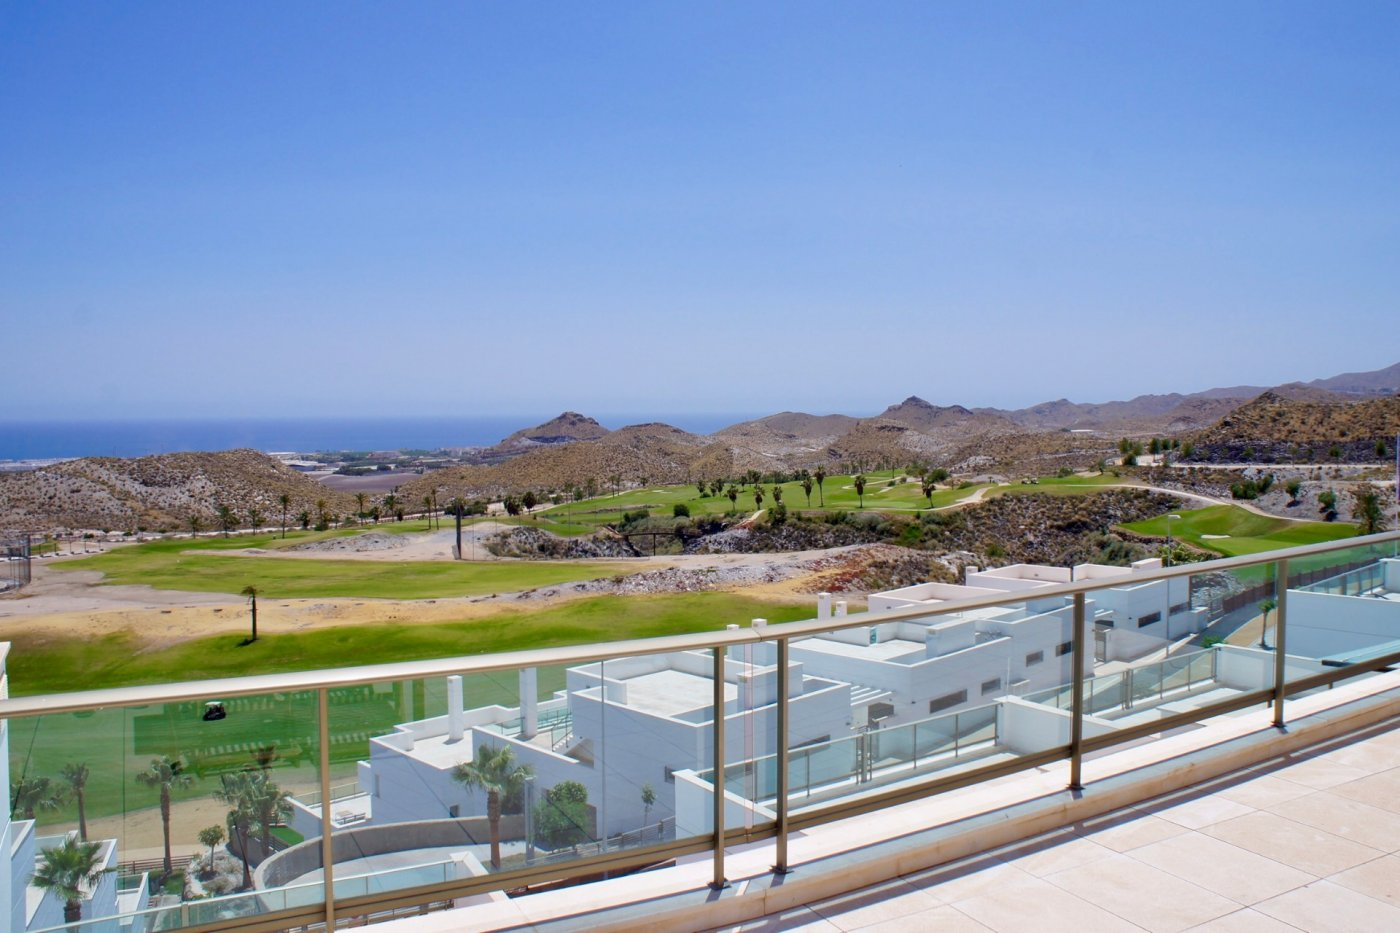 Apartment ref 3109 for sale in Mundo Aguilón Spain - Quality Homes Costa Cálida